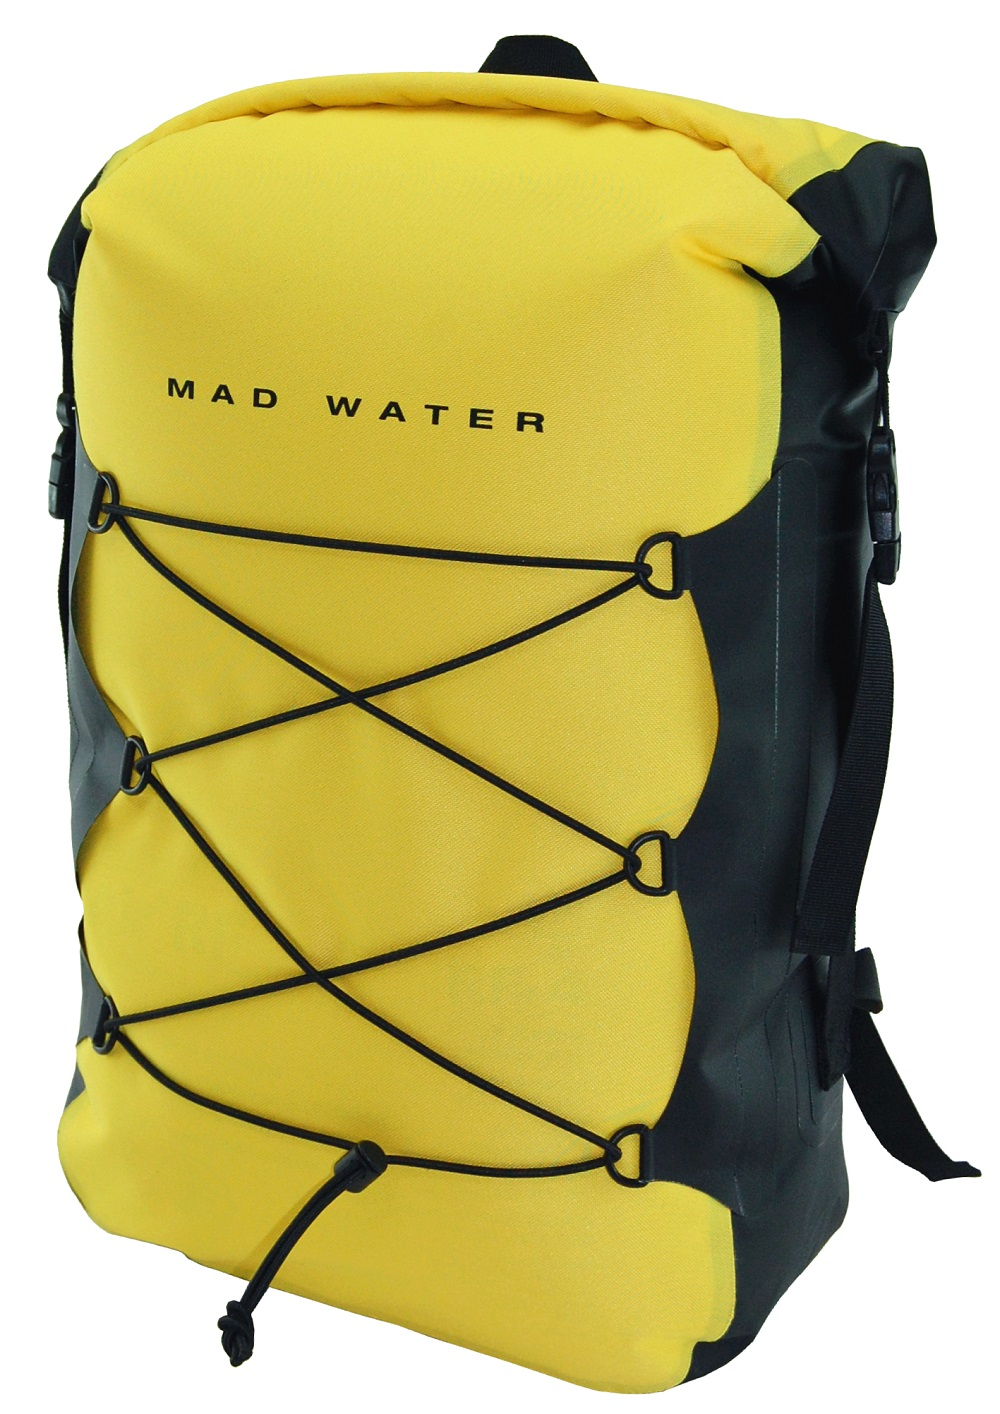 30L Classic Roll-Top Waterproof Backpack - Yellow